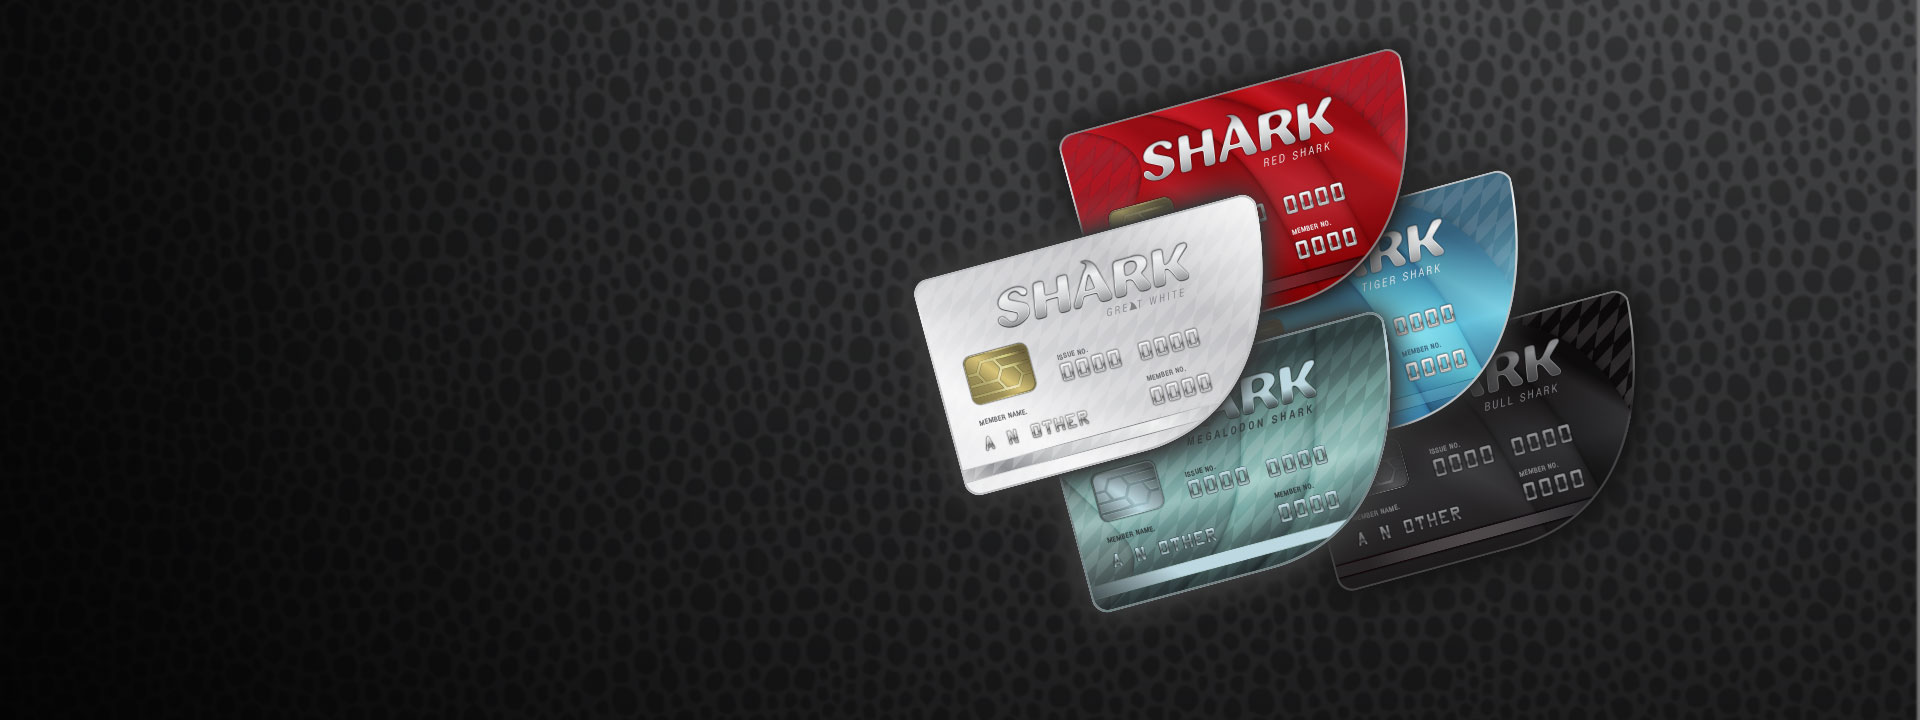 Five different coloured Shark credit cards lined up.